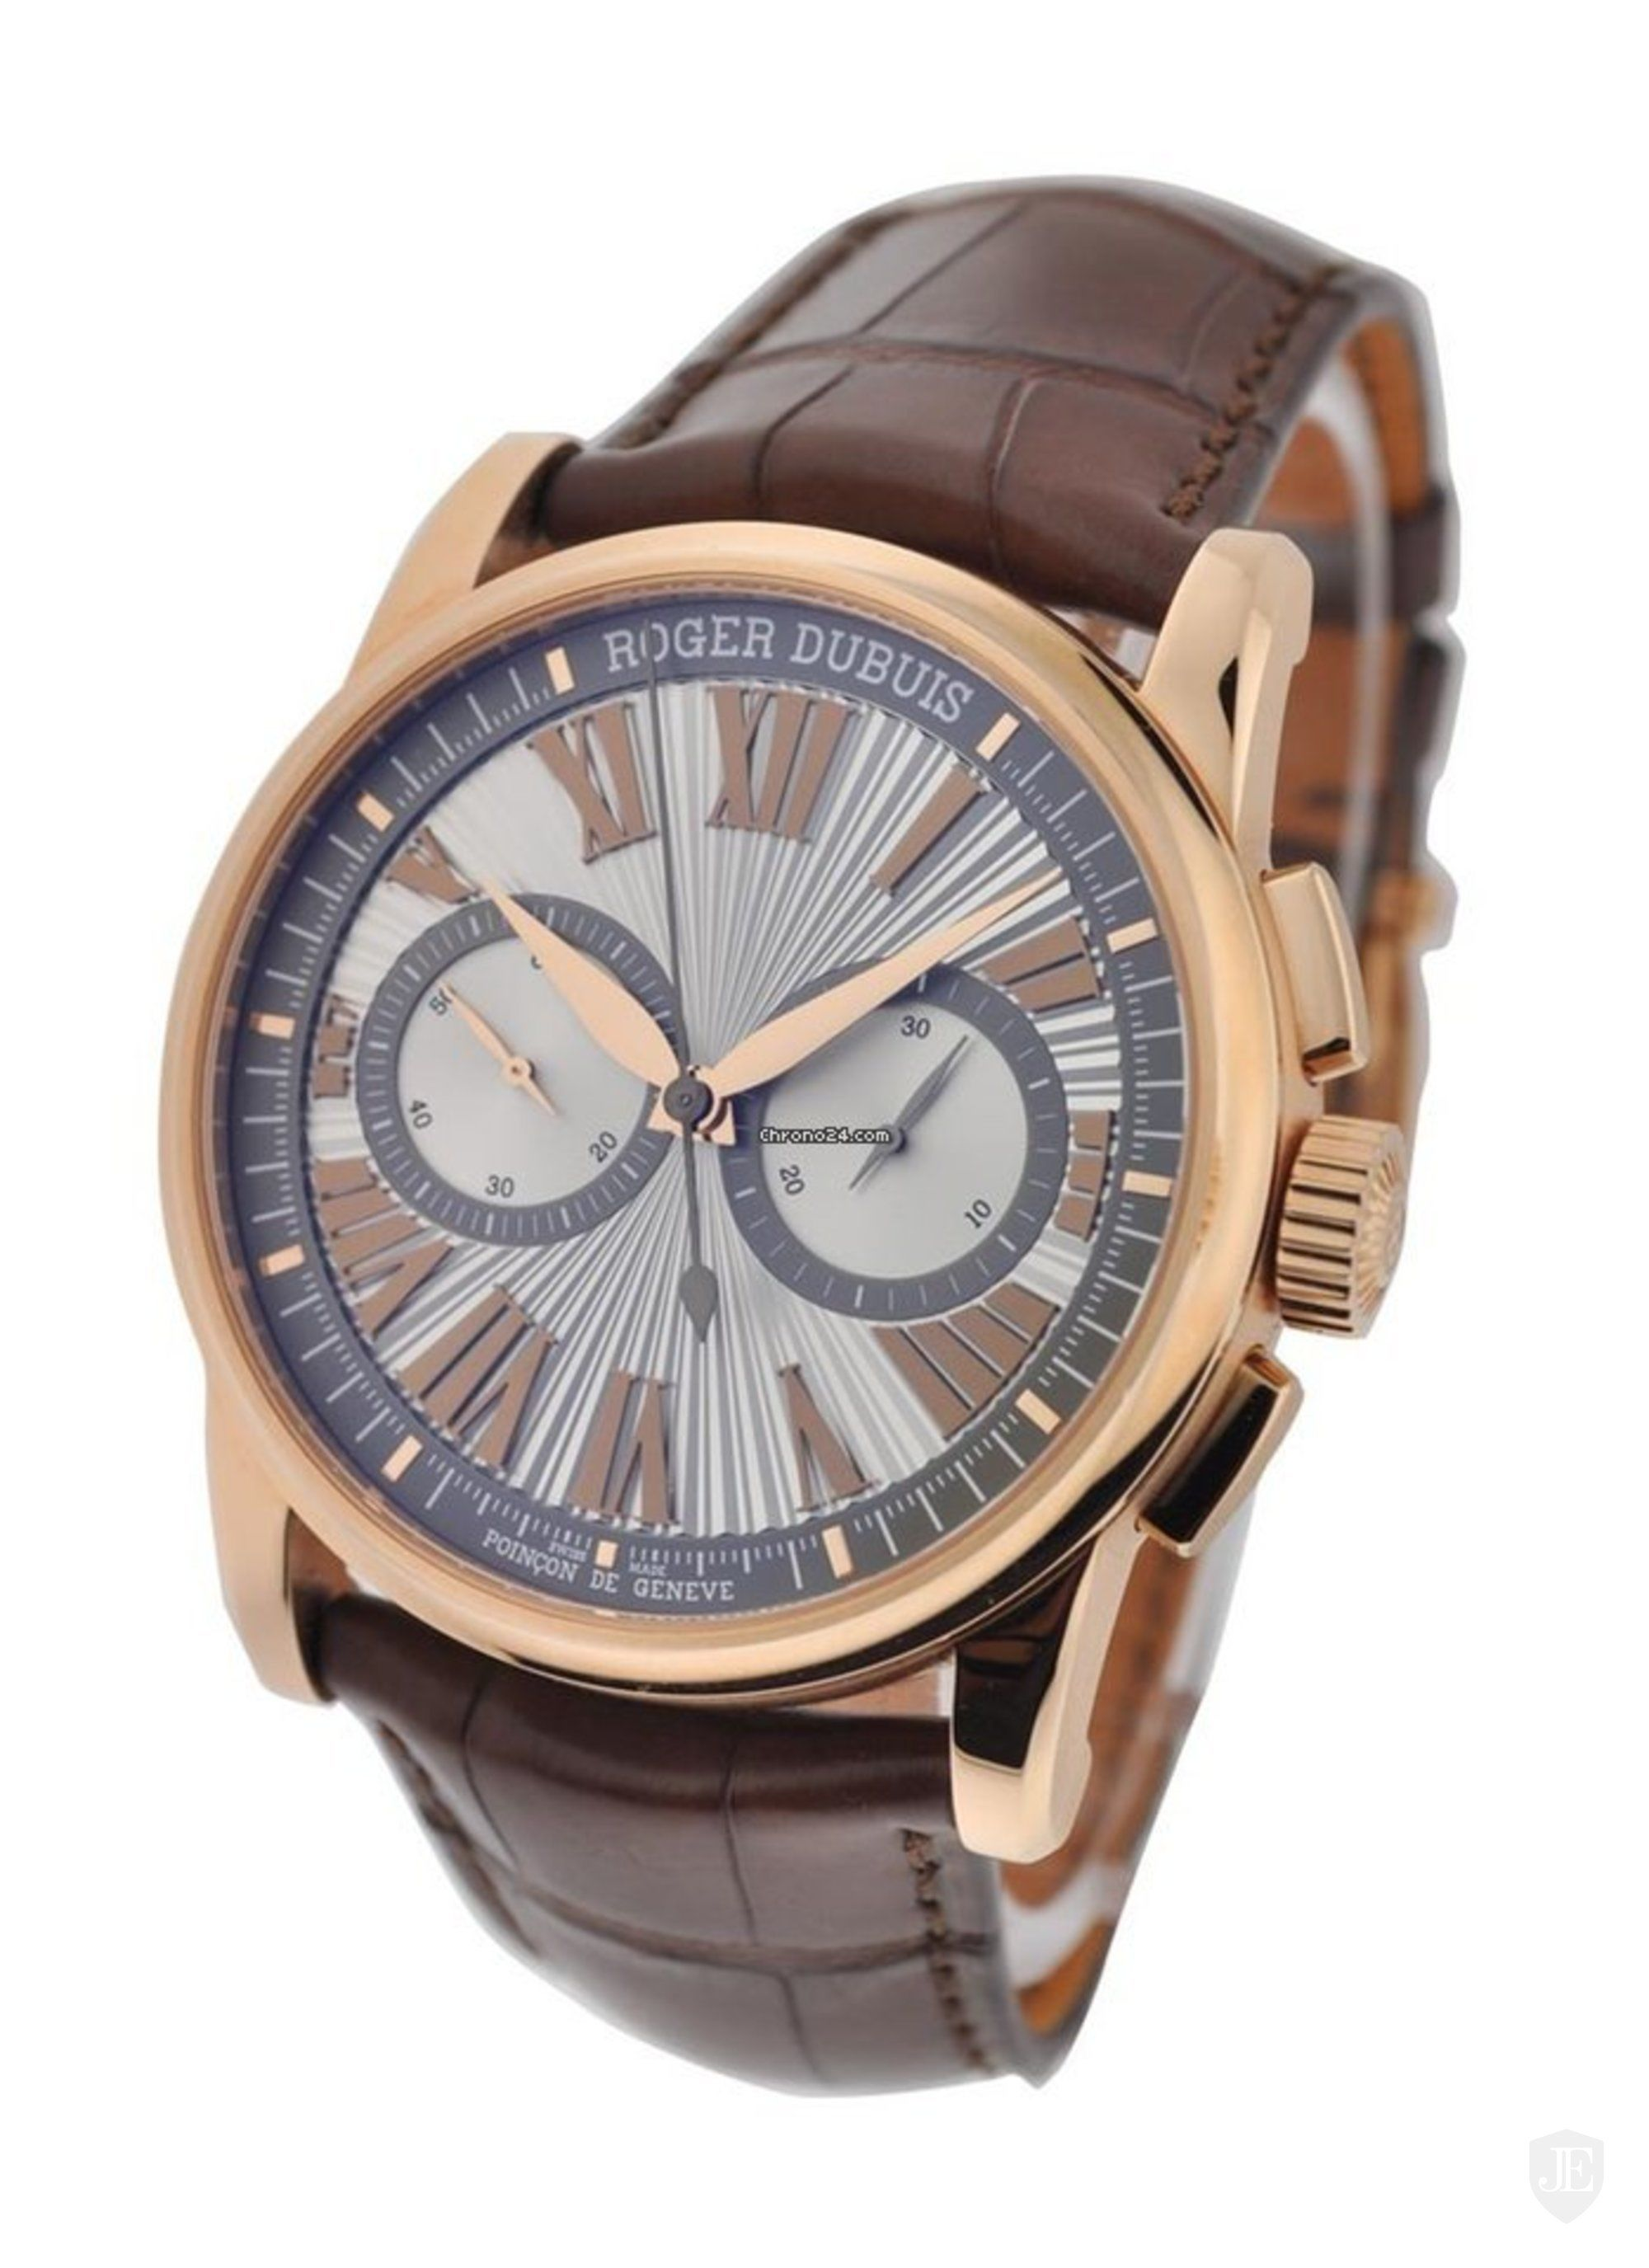 Roger Dubuis Hommage Mens Chronograph  42mm Automatic in Rose Gold